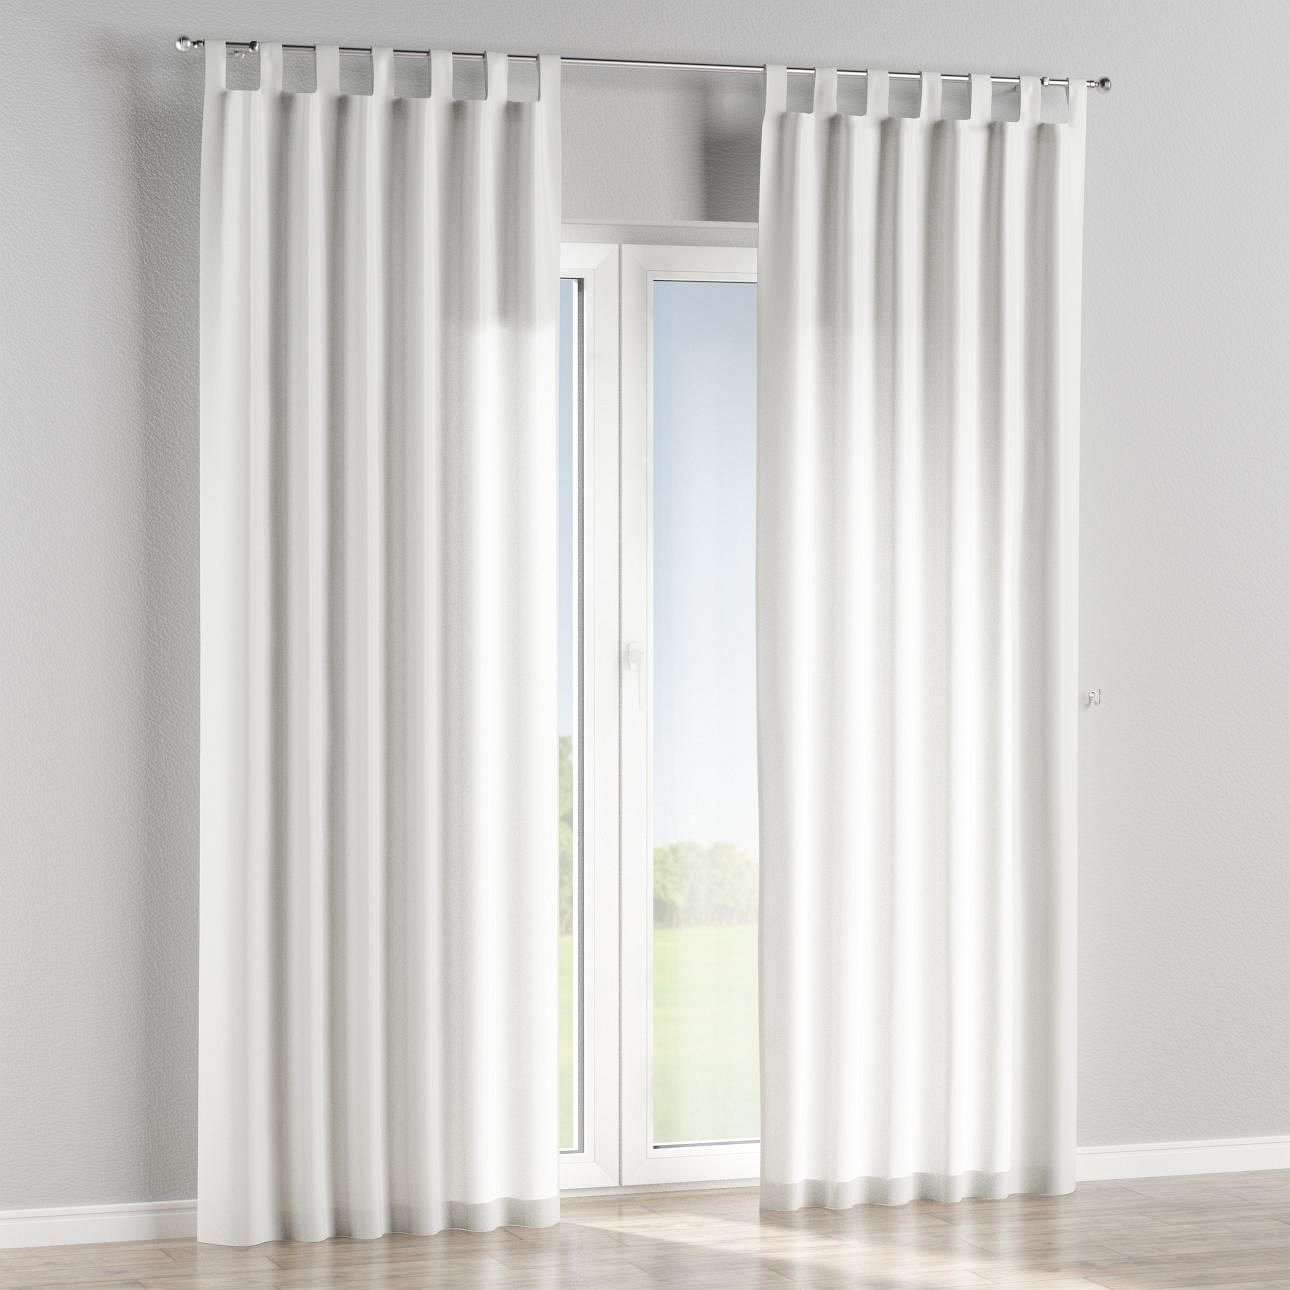 Tab top curtains in collection Norge, fabric: 140-80